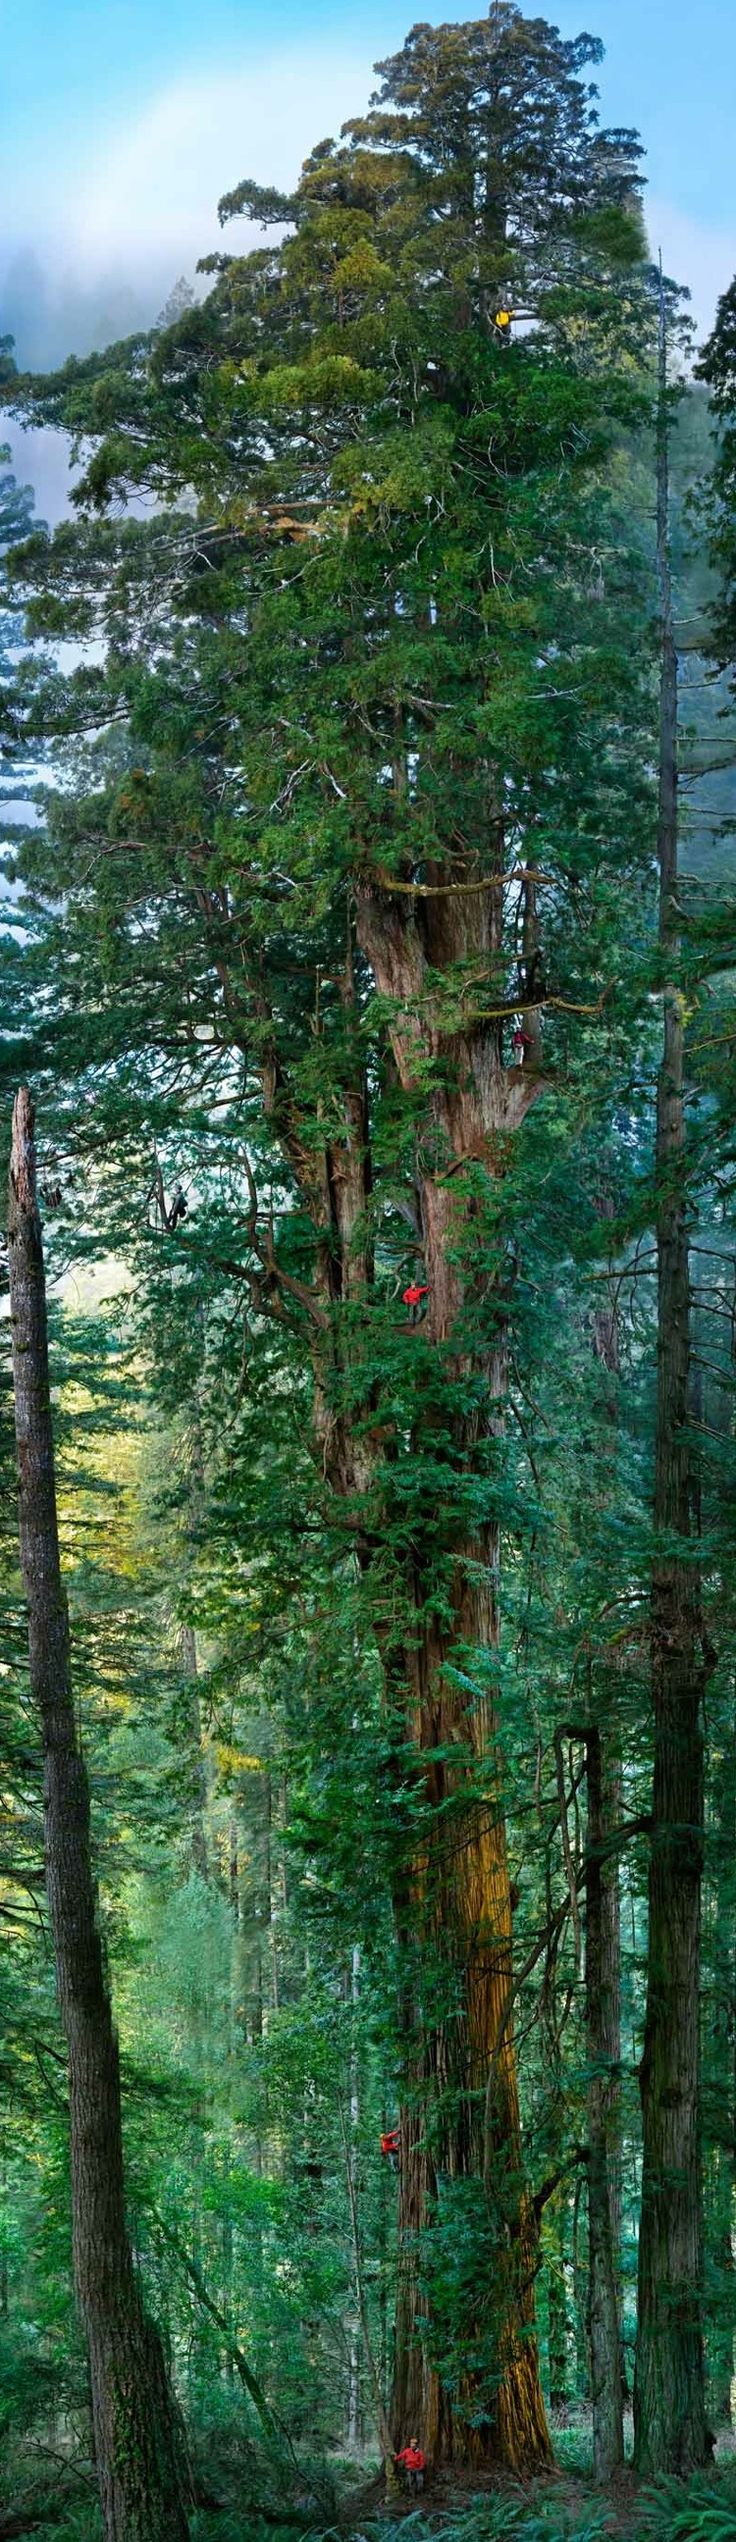 Sequoia National Park Sequoia tree, Tree forest, Nature